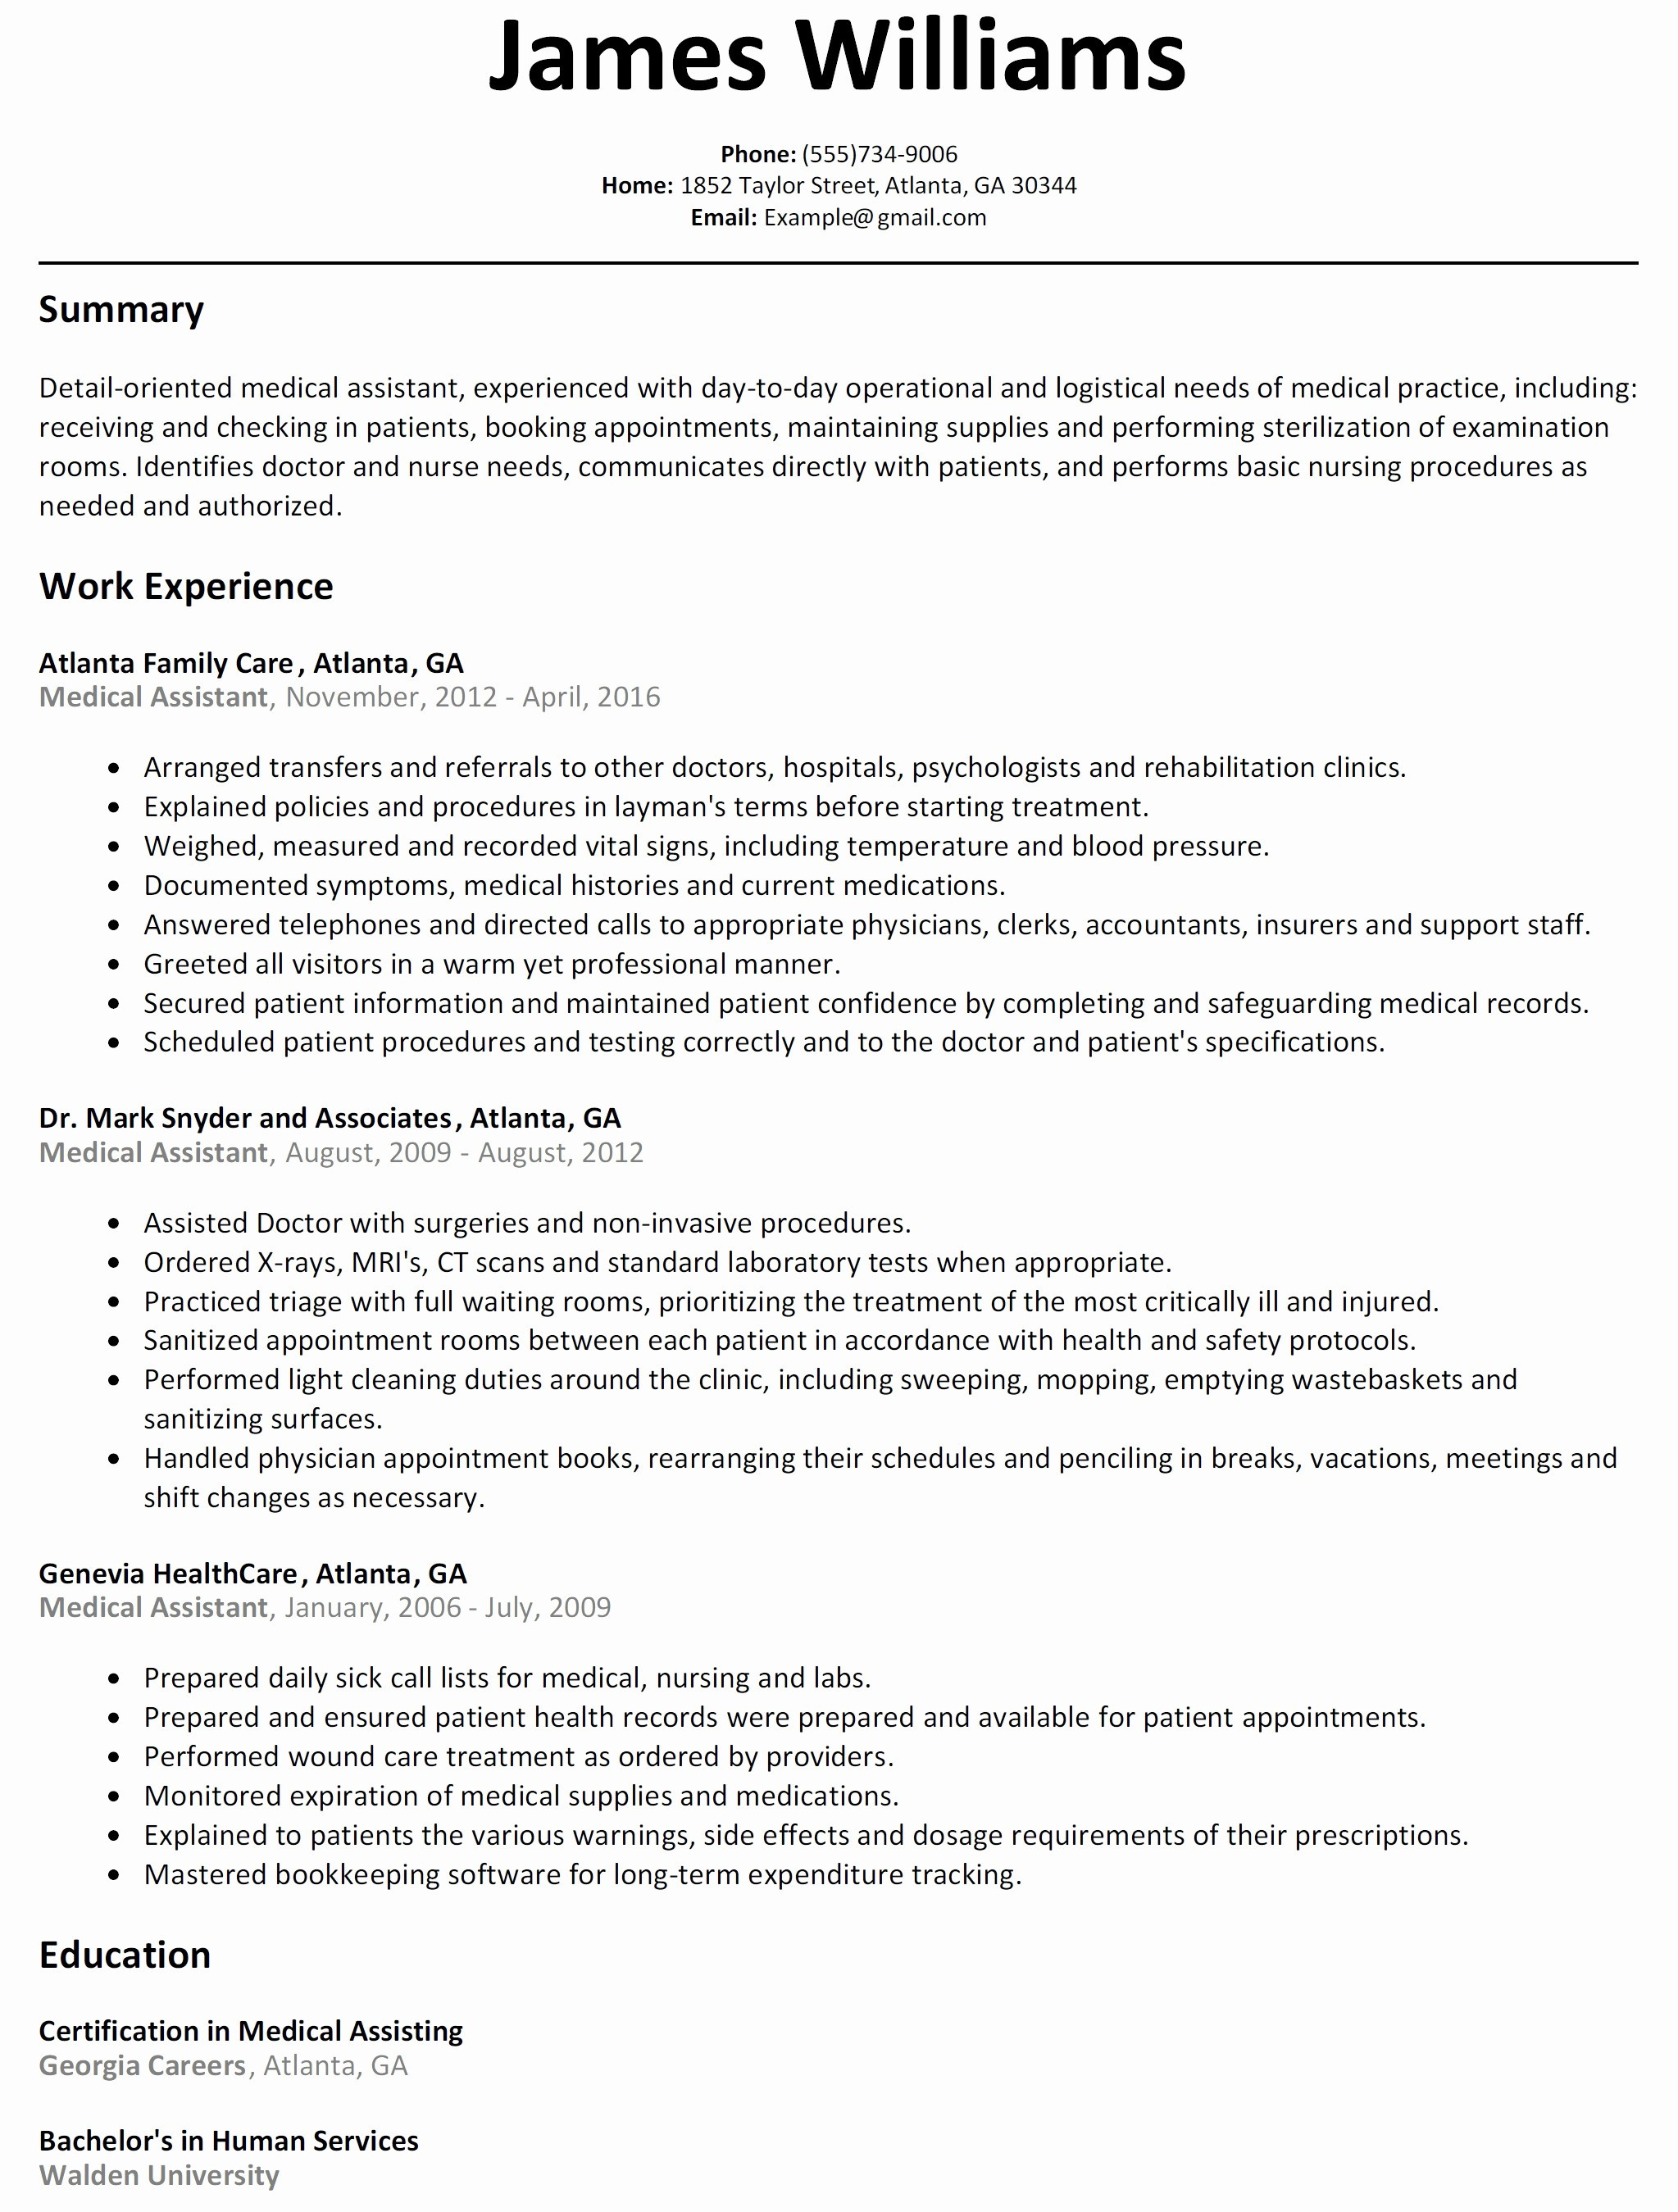 Customer Service Resume Samples Free - Basic Sample Resume Best Open source Resume Templates Simple